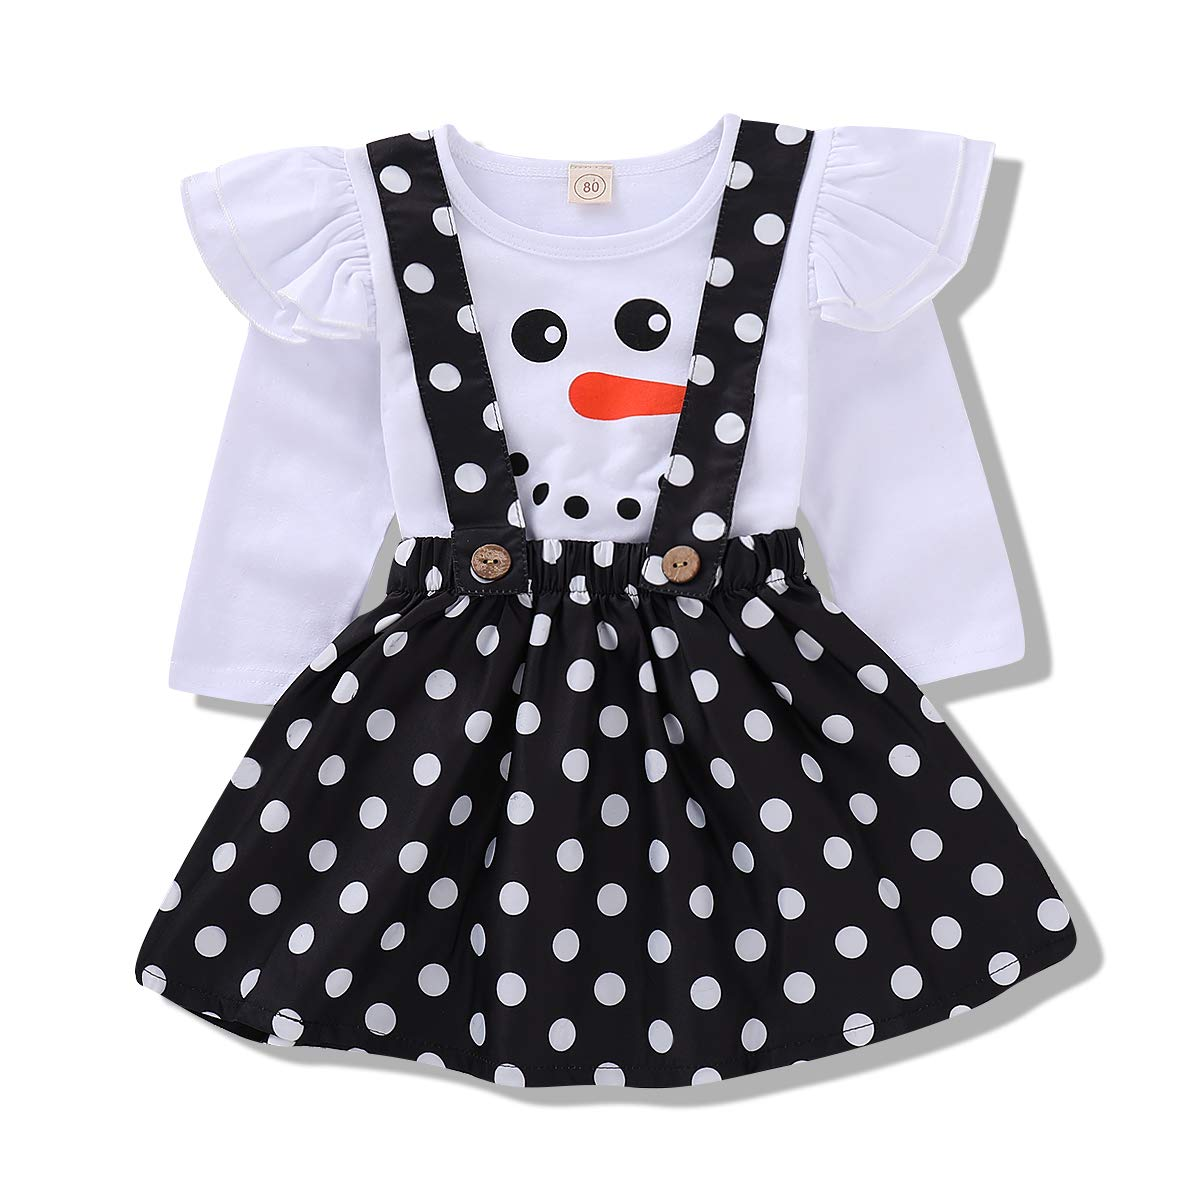 Babay Girl Xmas Party Dress Ruffle Sleeves Snowman Pattern Top+ Black Spot Suspender Skirt Clothes Set